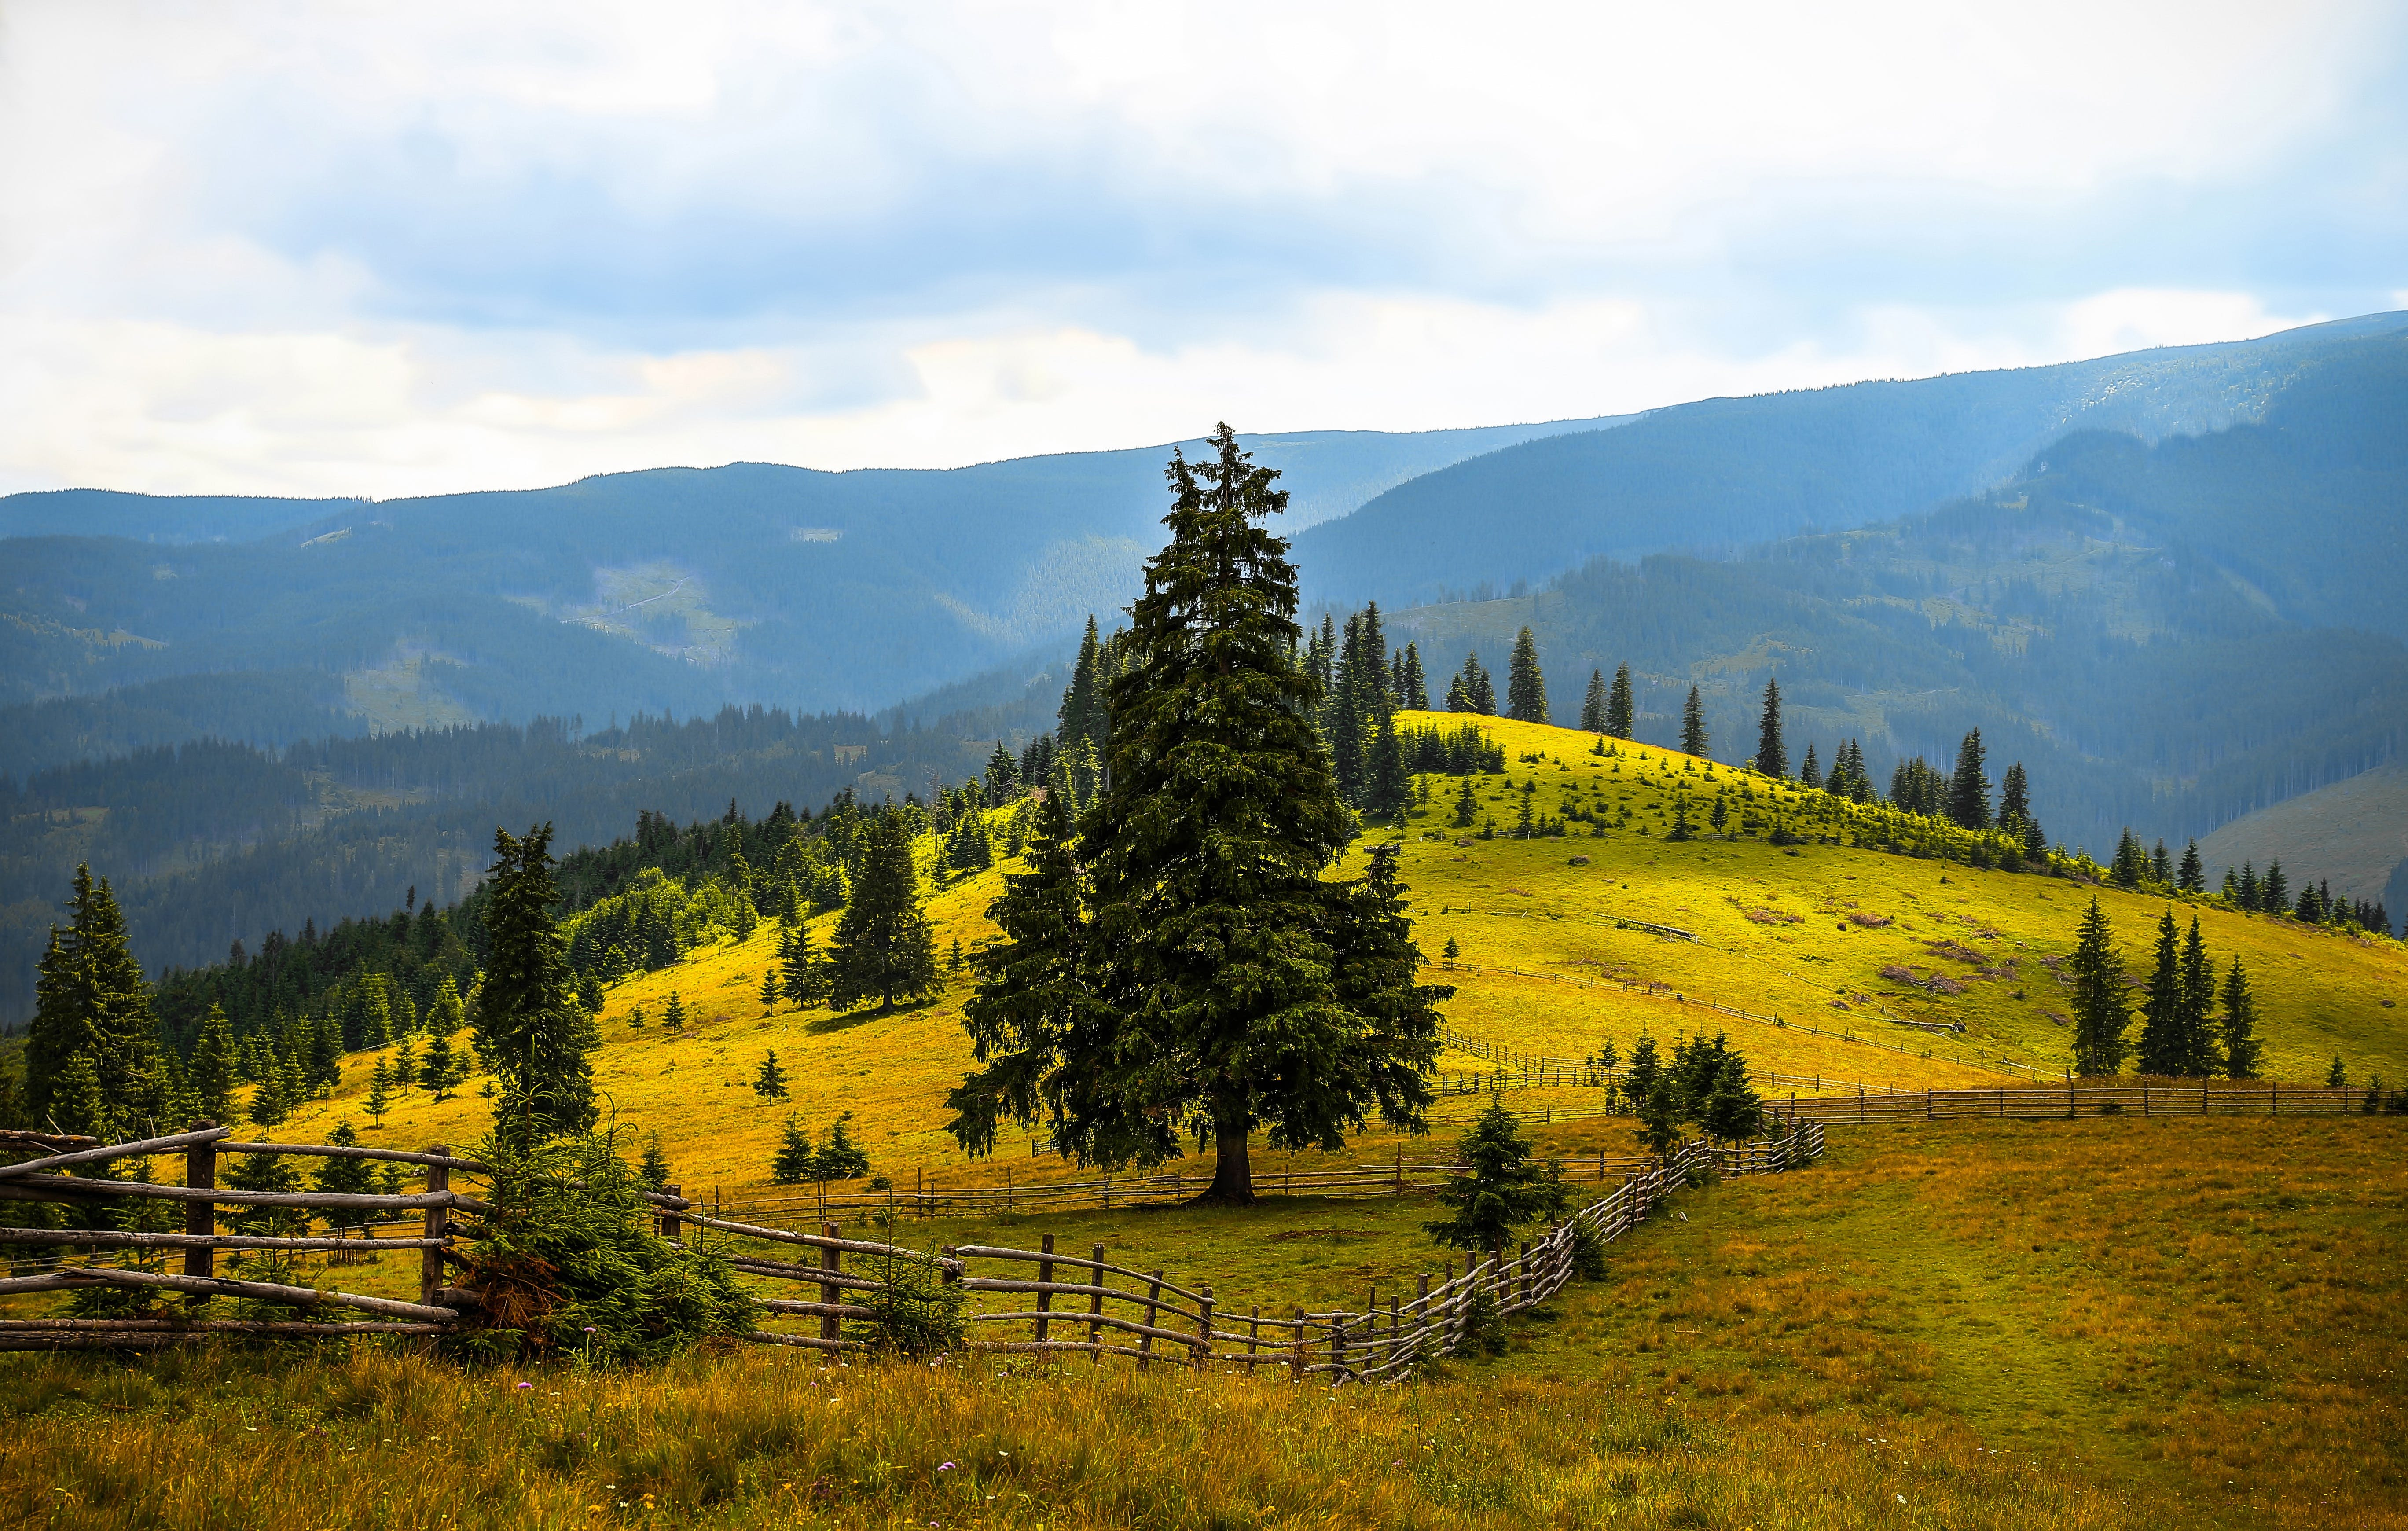 Pine Trees Field Near Mountains during Daytime